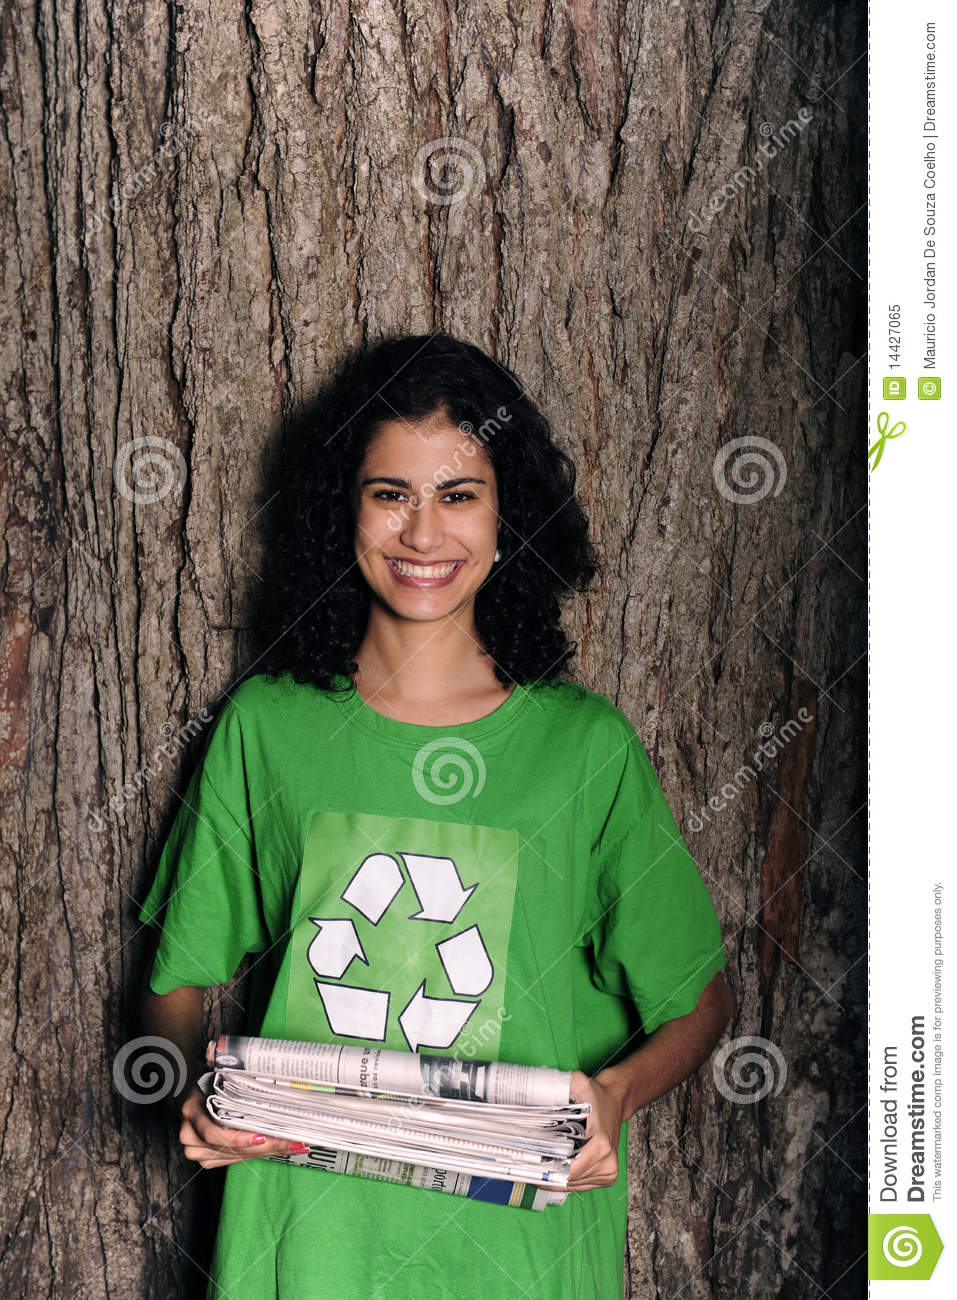 Woman with recycling sign holding newspapers